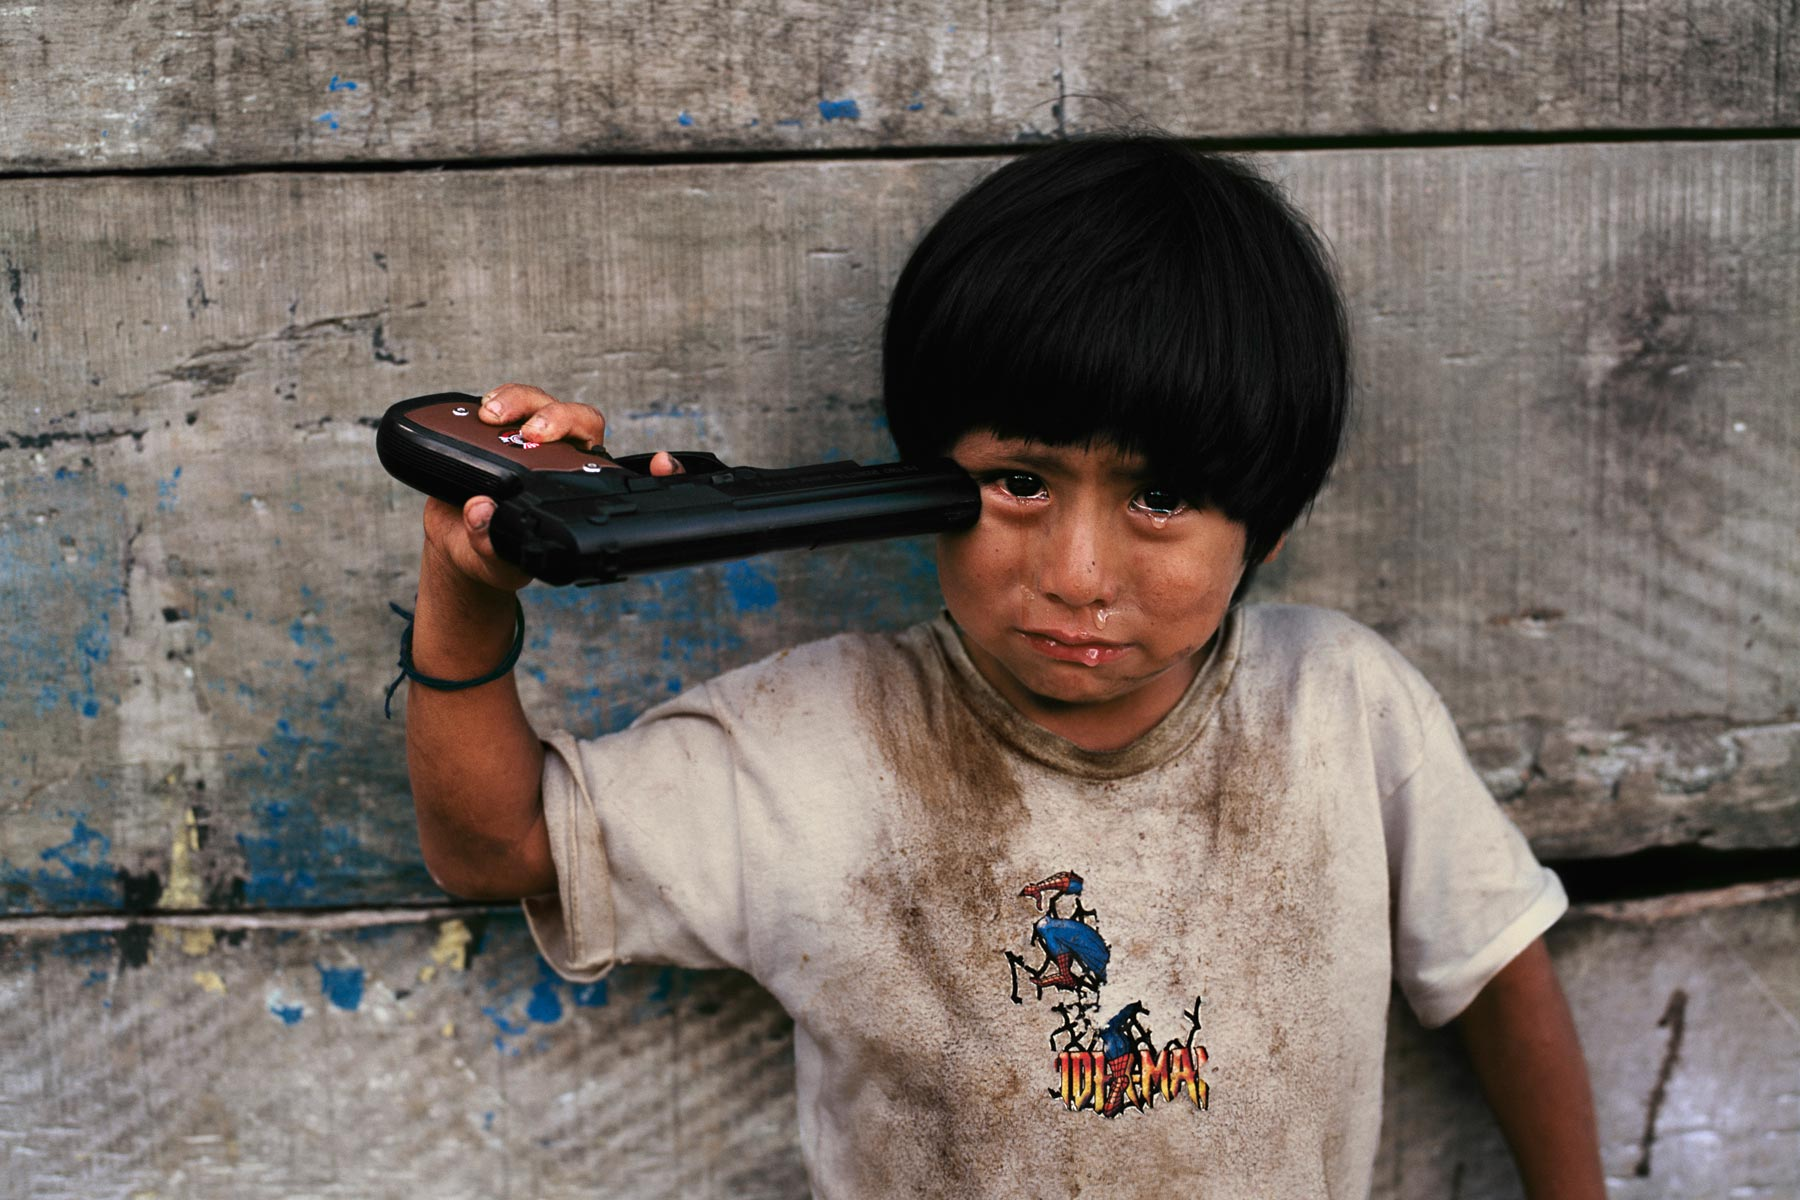 Steve McCurry photo from Peru. The caption says it is a toy gun.